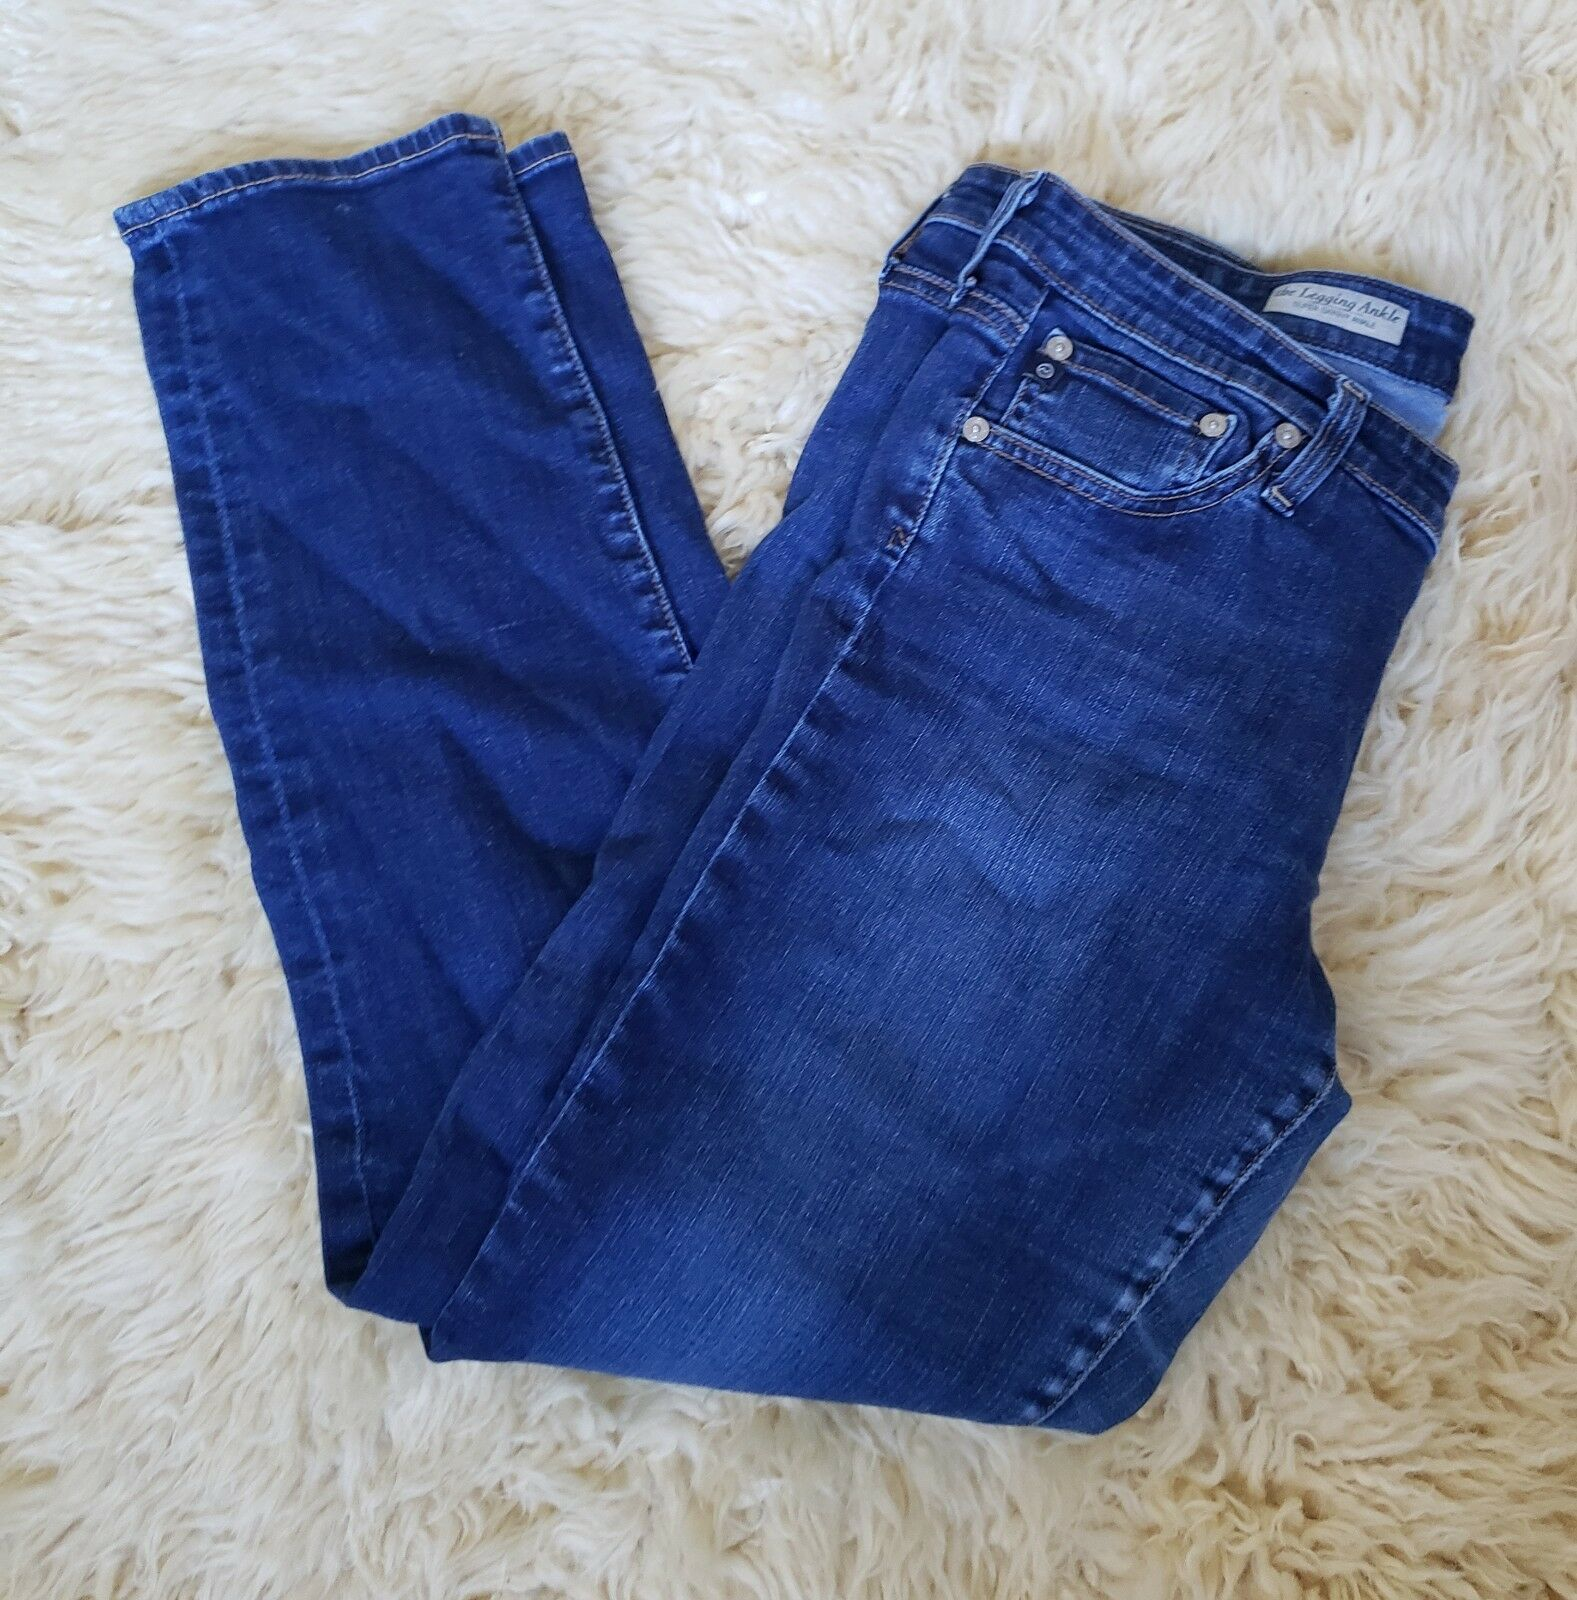 AG Adriano goldschmied Size 31 The Legging Ankle Super Skinny Jeans Denim USA